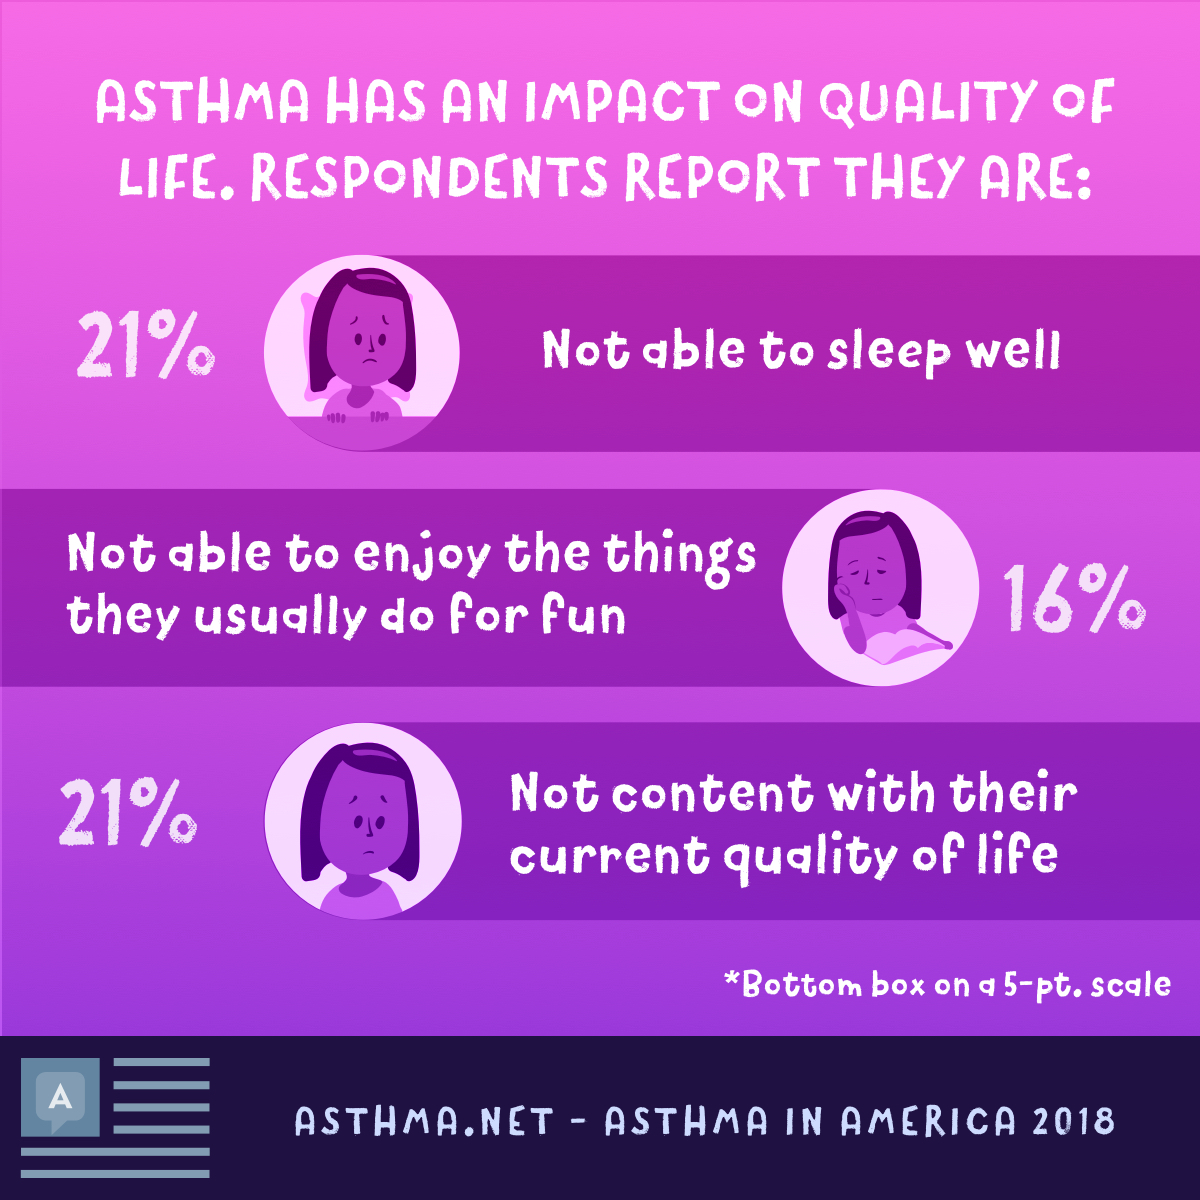 Asthma impacts one's quality of life too